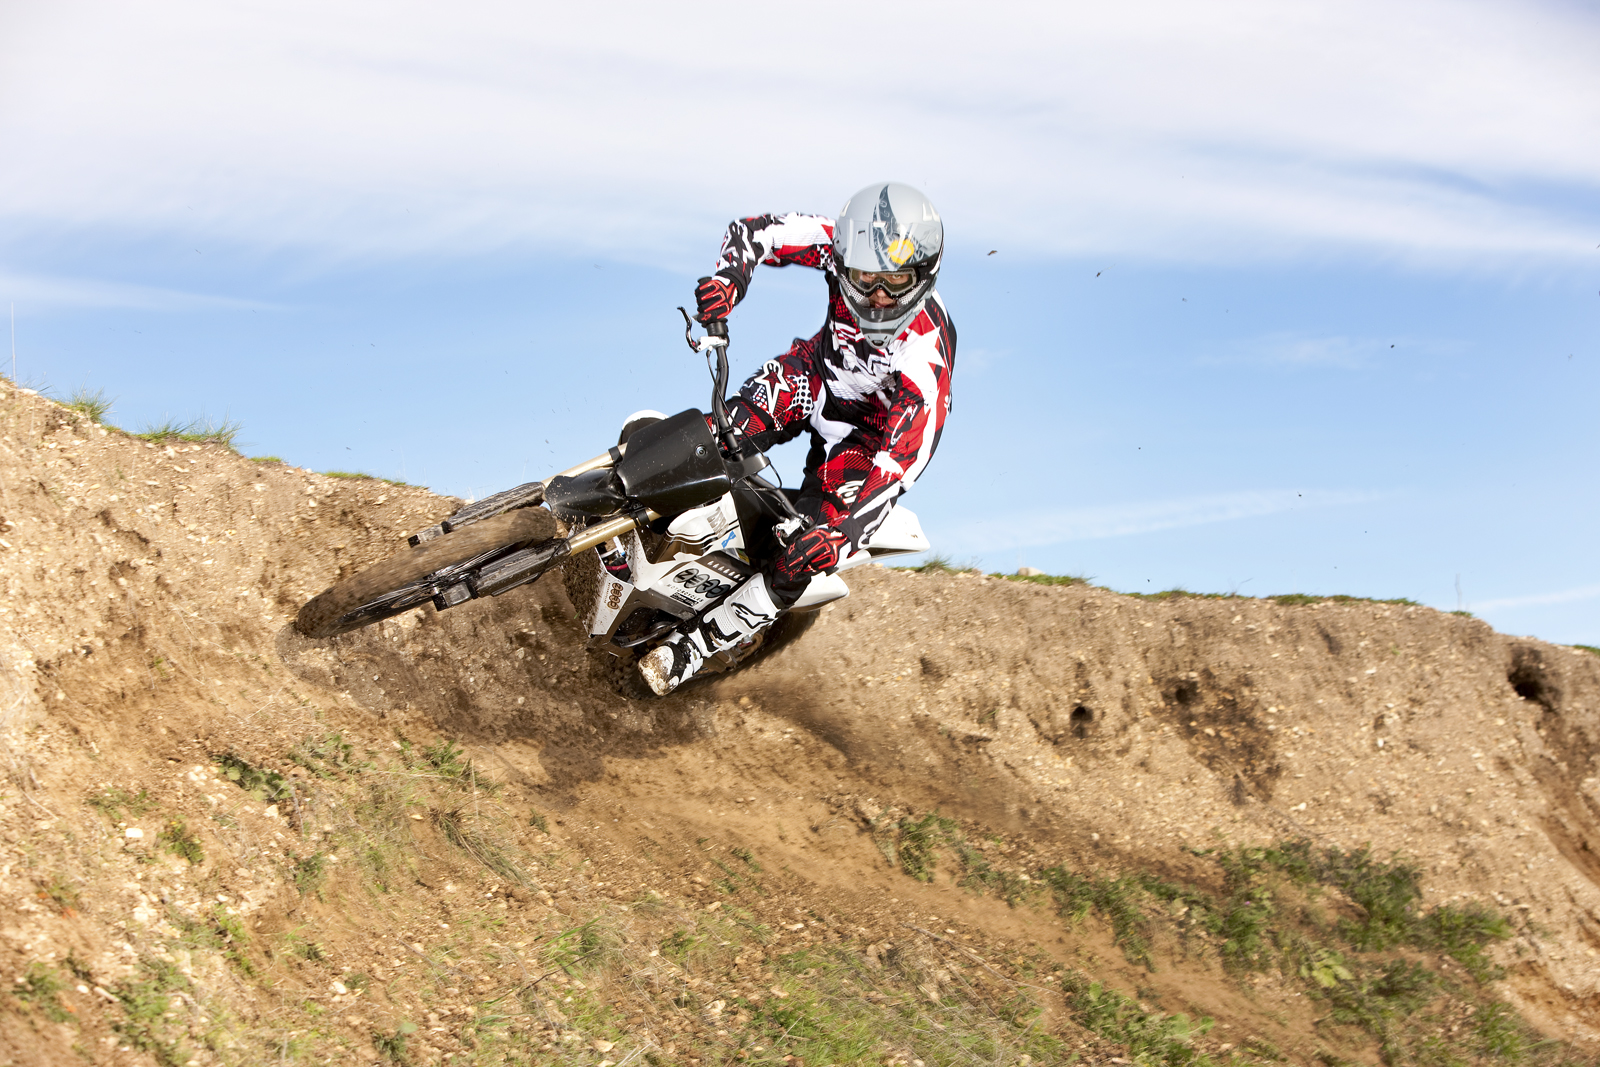 2010 Zero X Electric Motorcycle: Zaca Station - Wall Burm